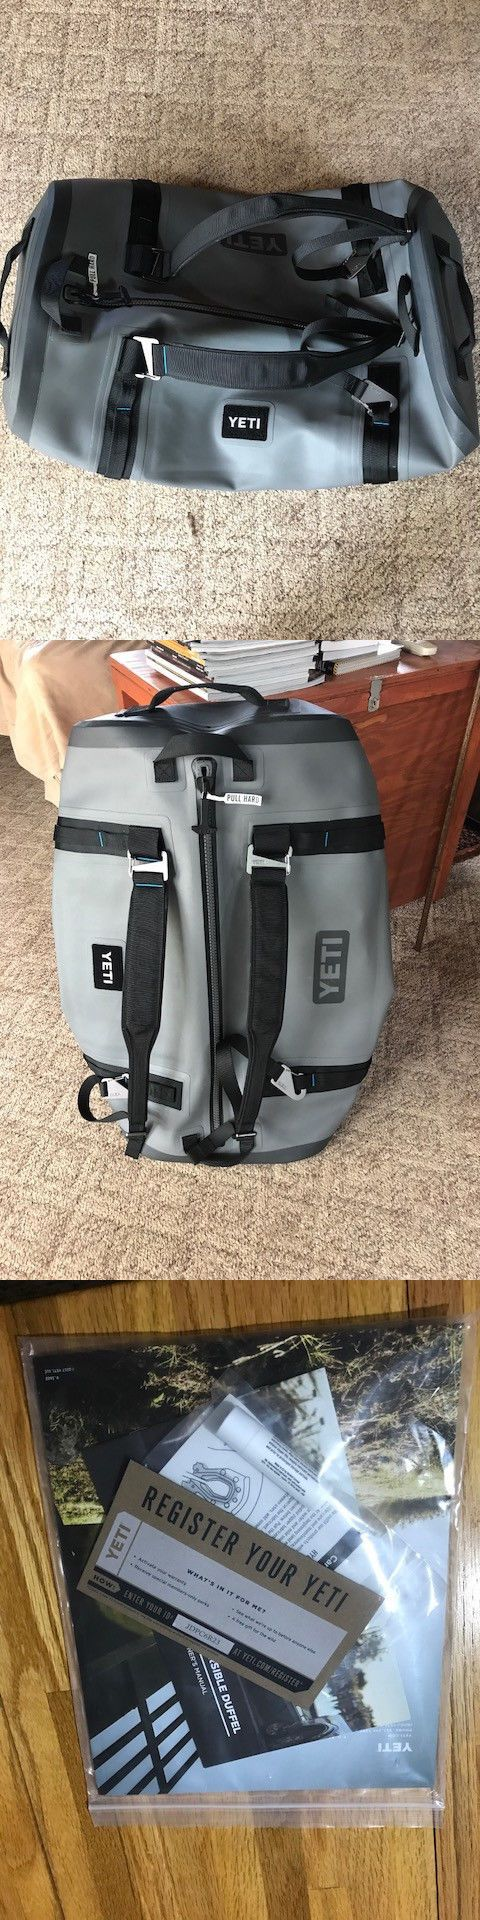 Accessories 87089: Yeti Panga 75 Dry Duffle Bag New!!! Free Shipping -> BUY IT NOW ONLY: $310 on eBay!